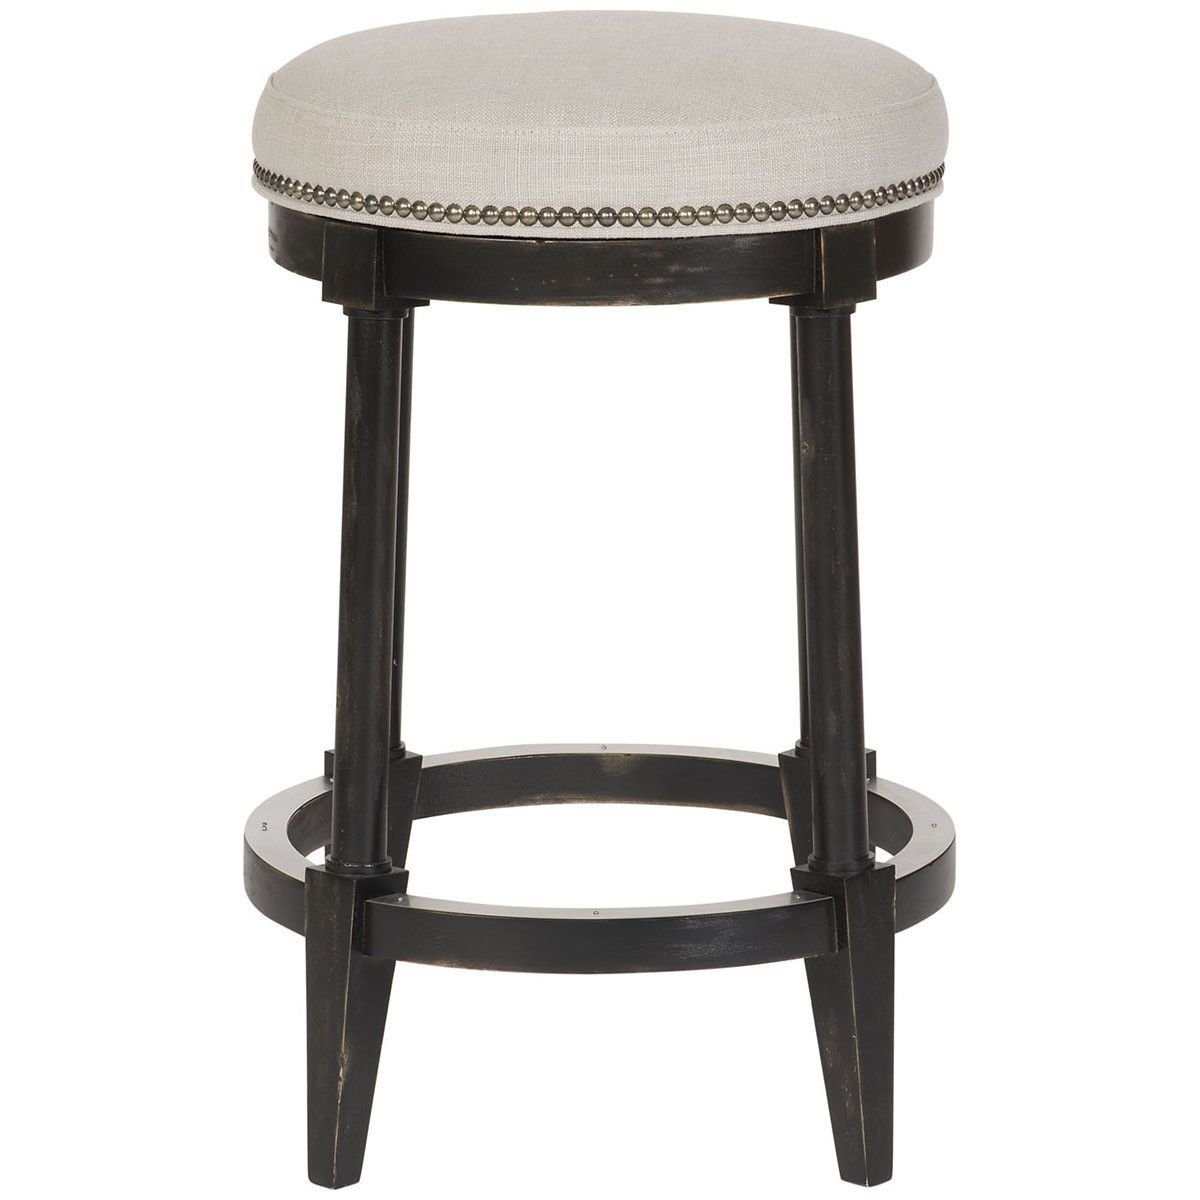 Shop For Vanguard Lydia Counter Stool, And Other Bar And Game Room Stools  At Hickory Furniture Mart In Hickory, NC. Nail Trim: Black Silver At Base.